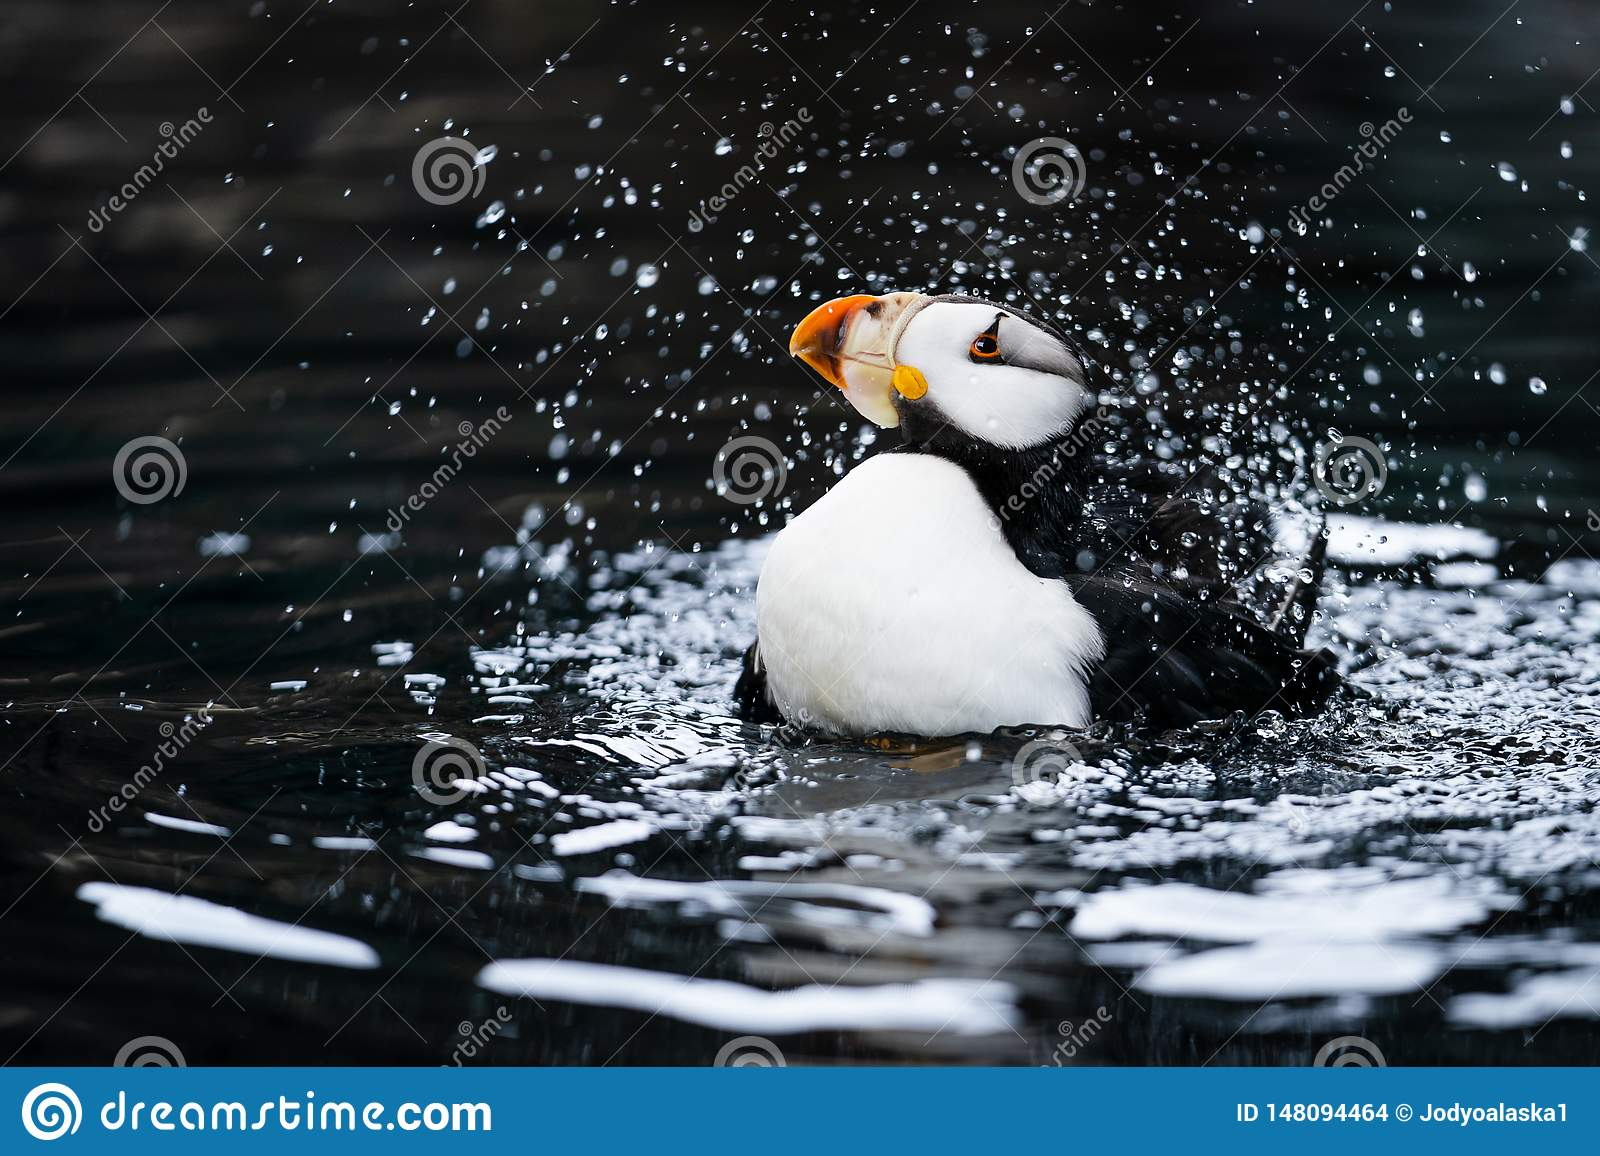 Horned Puffin Making a Big Splash